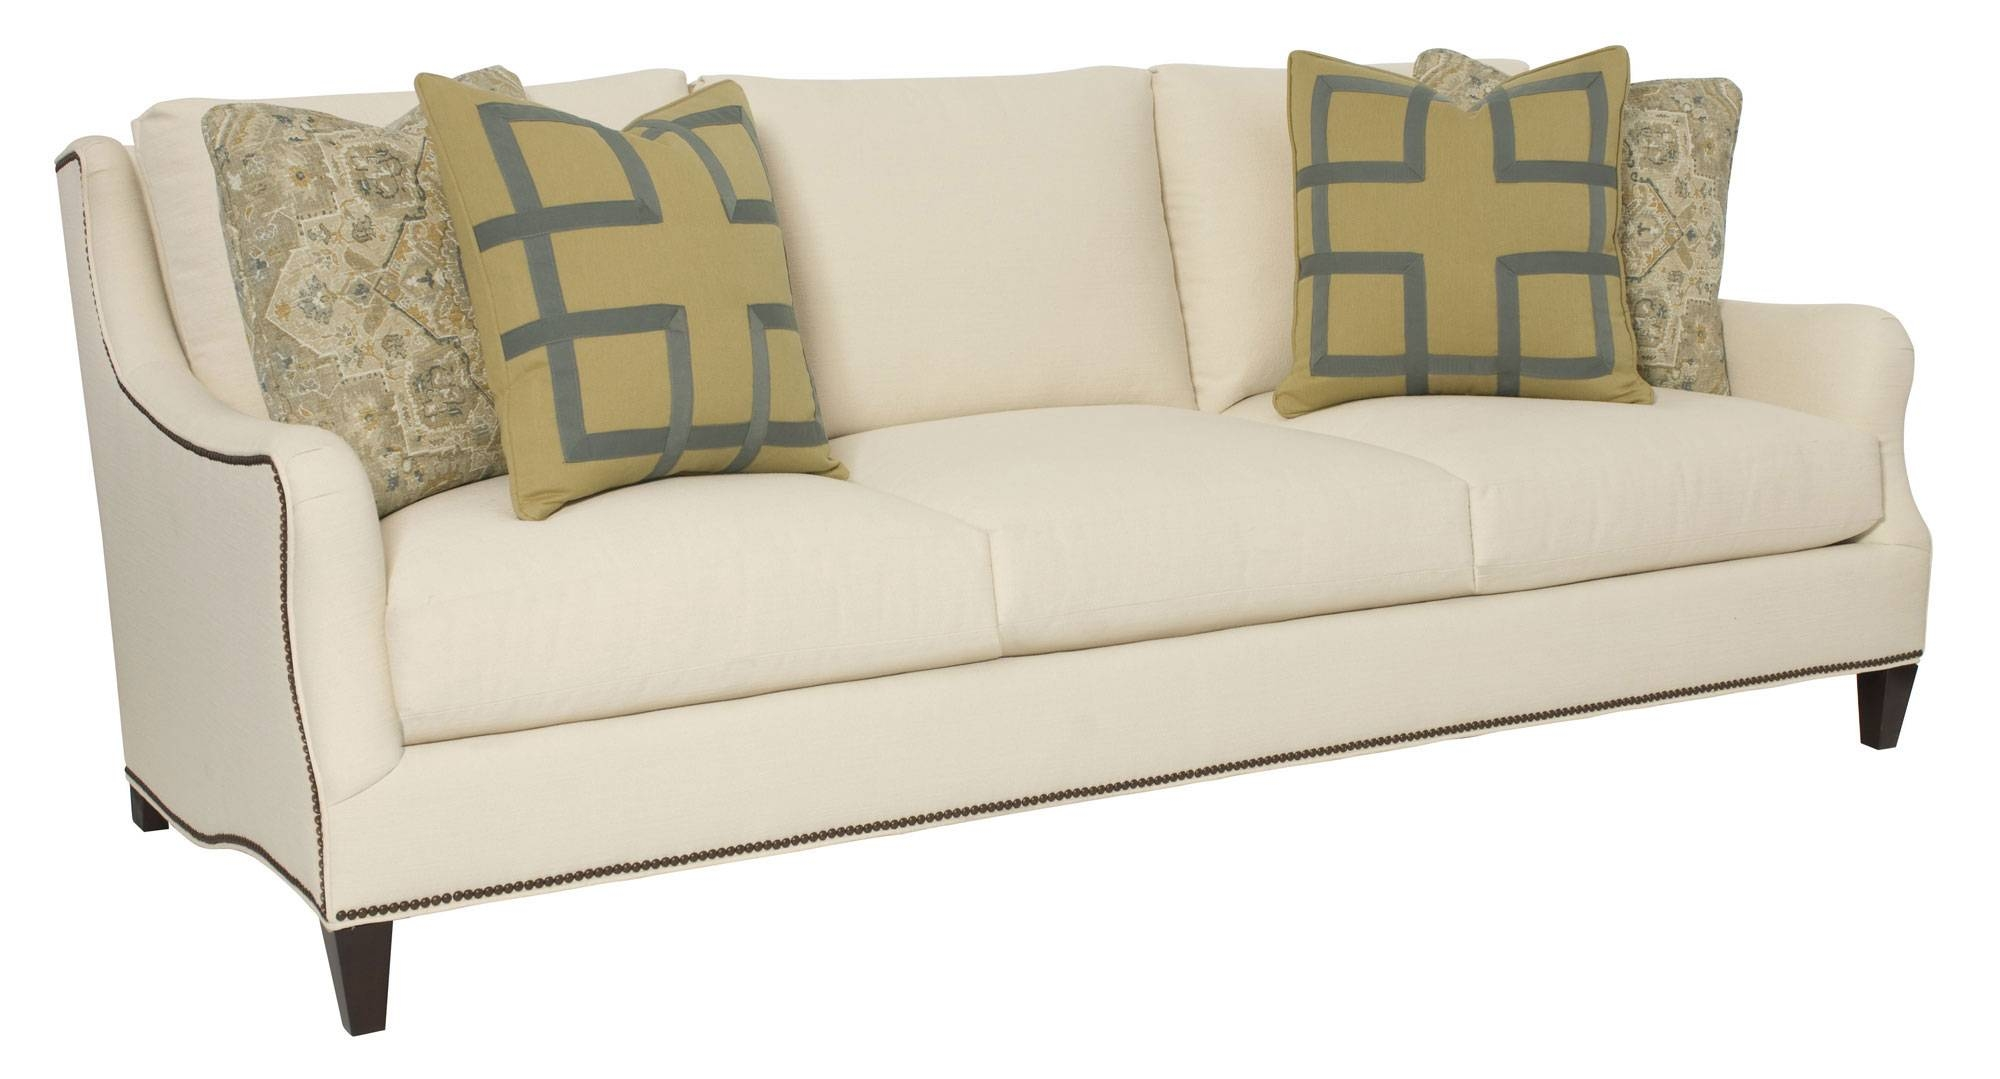 Hamilton Sofa for Bernhardt Sofas (Image 4 of 15)